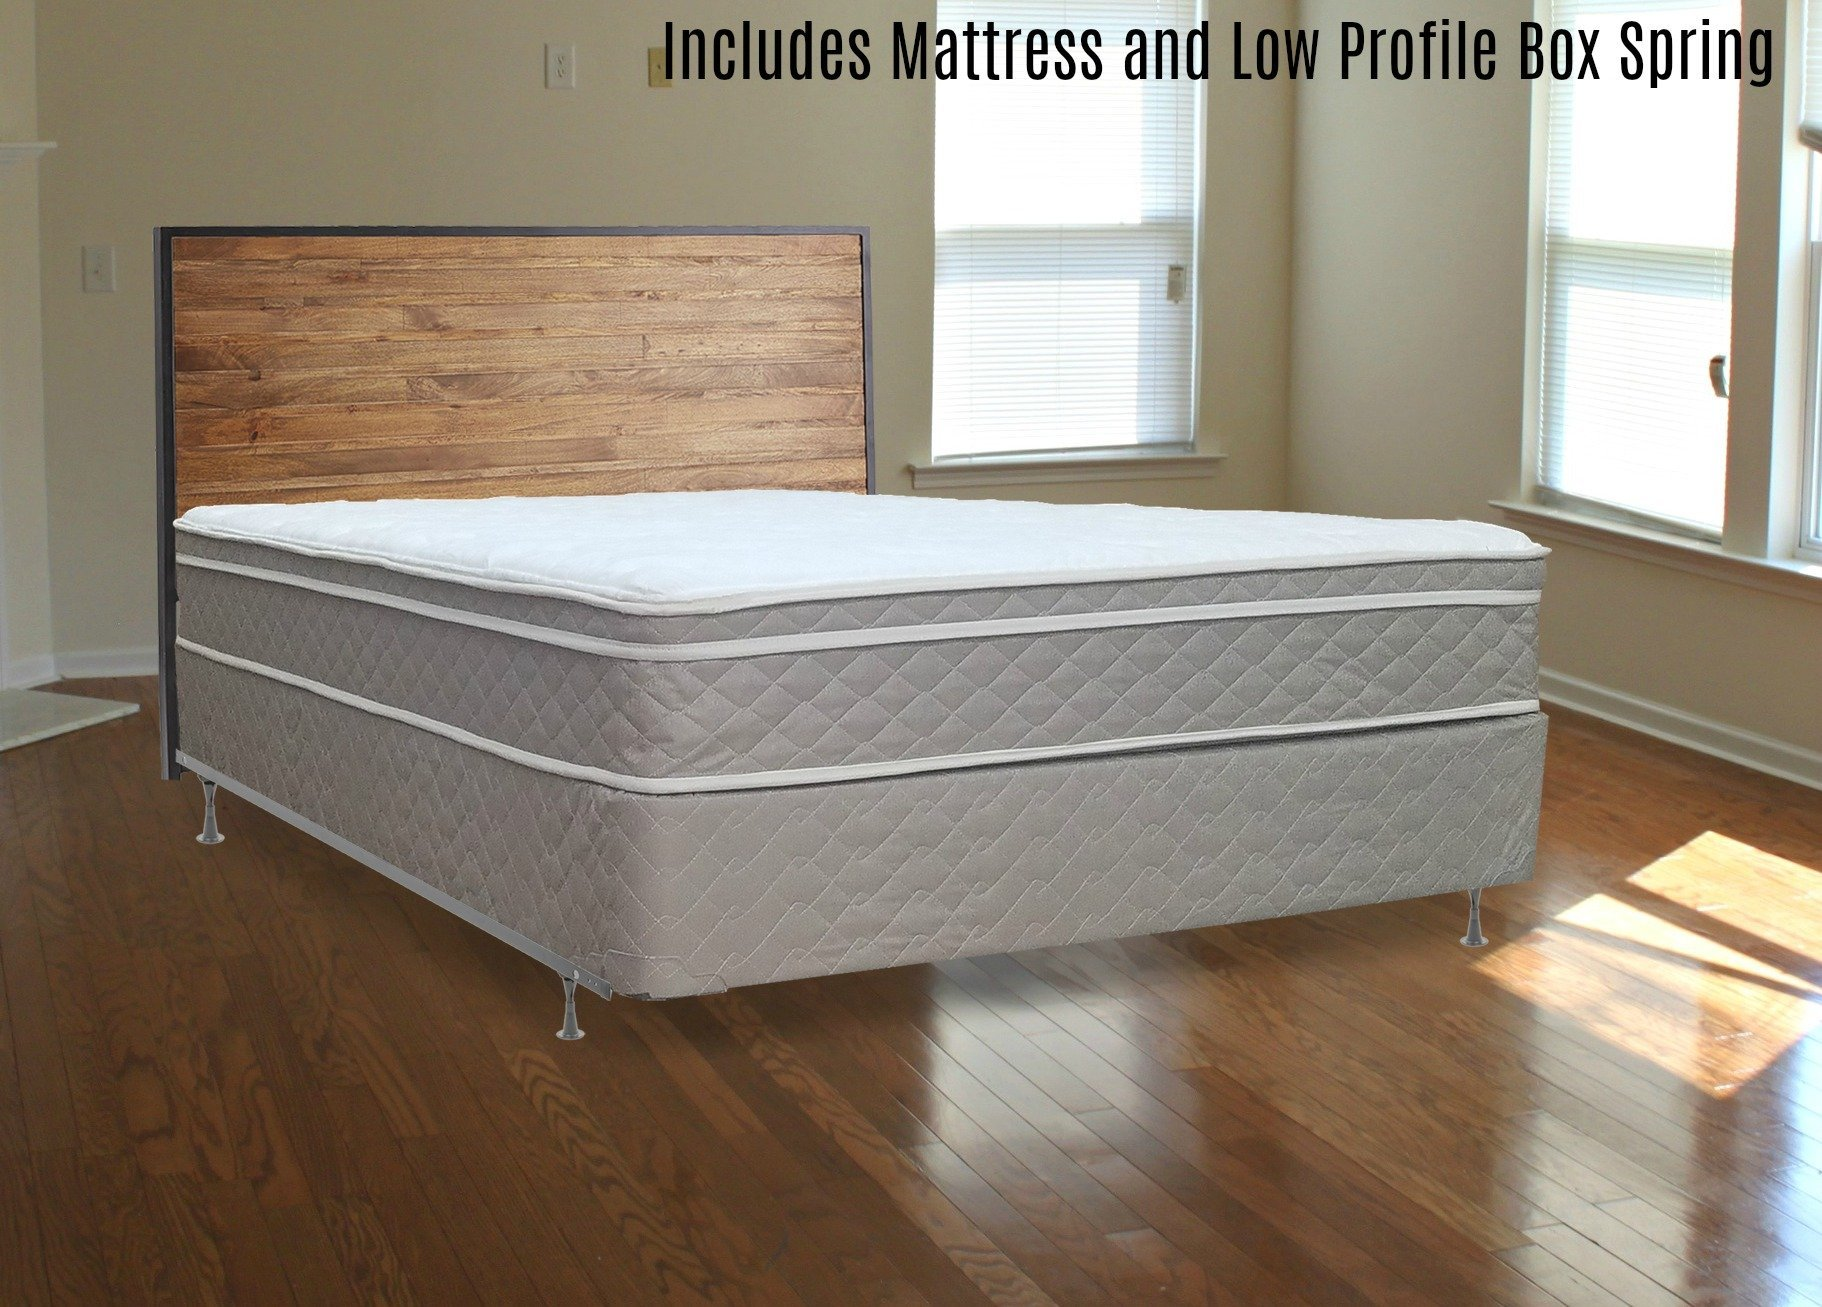 Spinal SolutionFully Assembled Orthopedic Mattress and 4-inch Box SpringFull XL Size by Spinal Solution